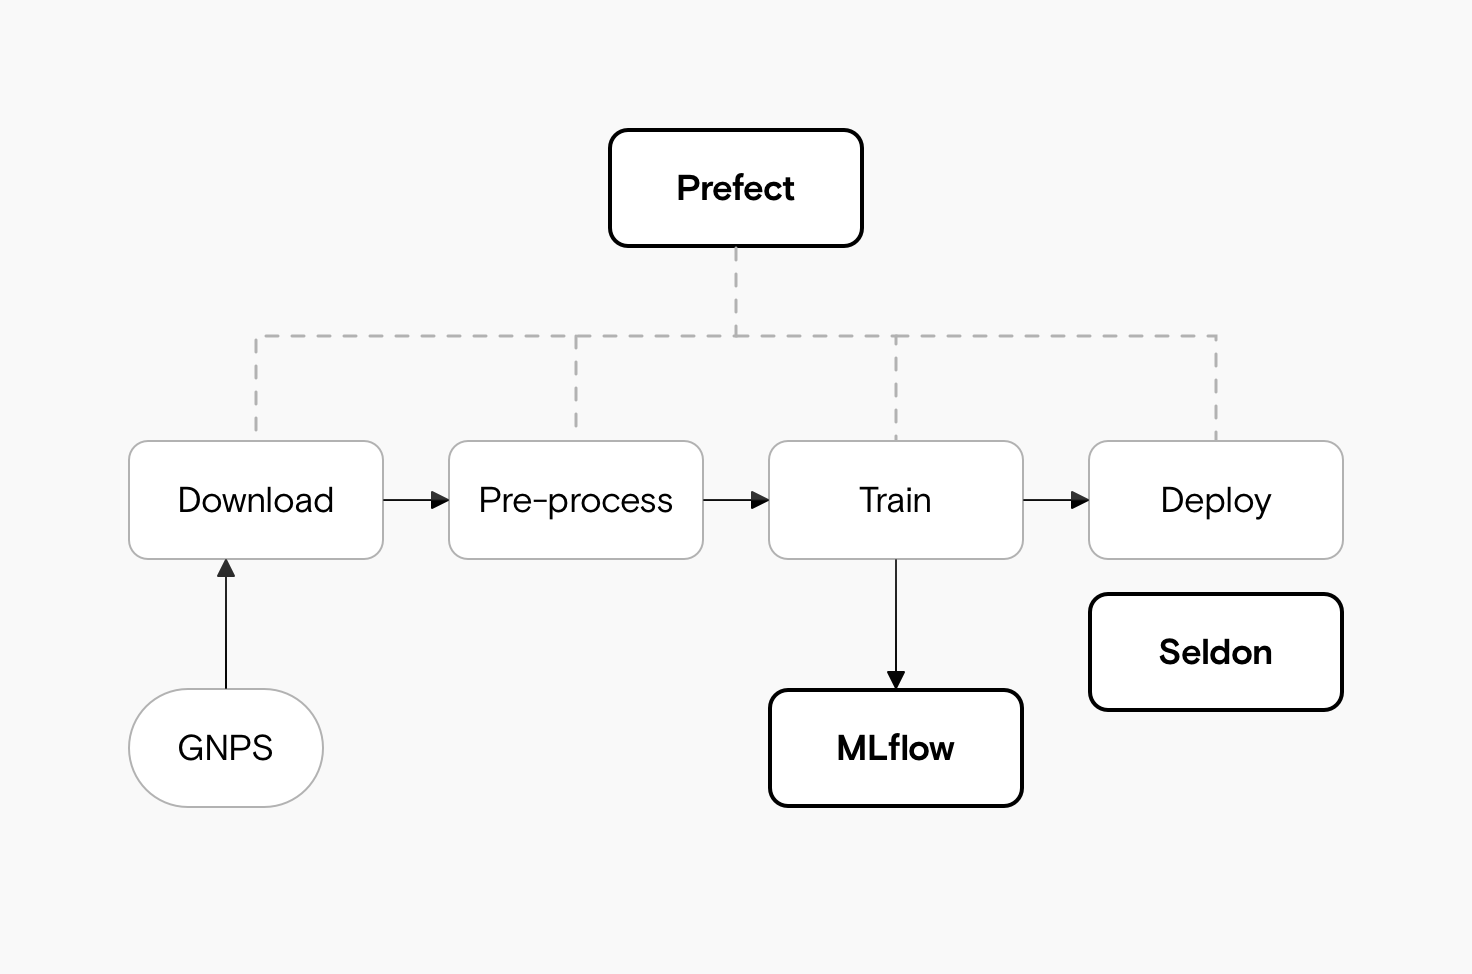 A diagram showing the main steps of download to pre-process to train to deploy. Prefect is connected to all steps, while the training step is connected to MLflow and the deploy step to Seldon.